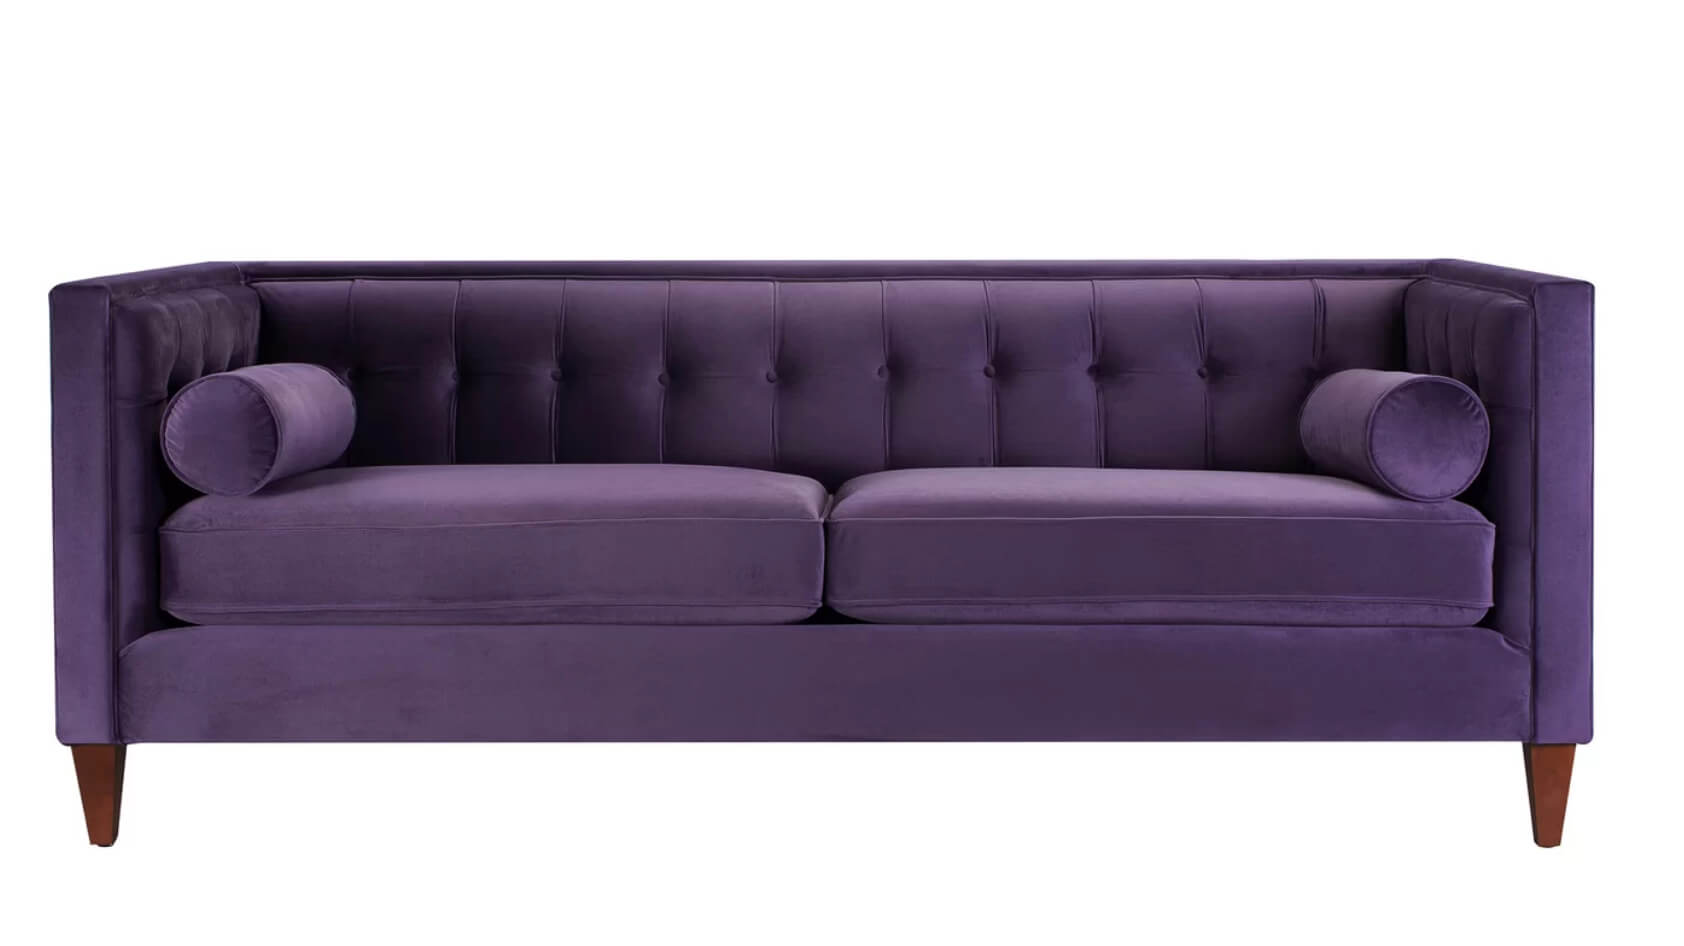 purple velvet upholstered sofa two piece slipcover 12 dreamy sofas you 39ll love freshome